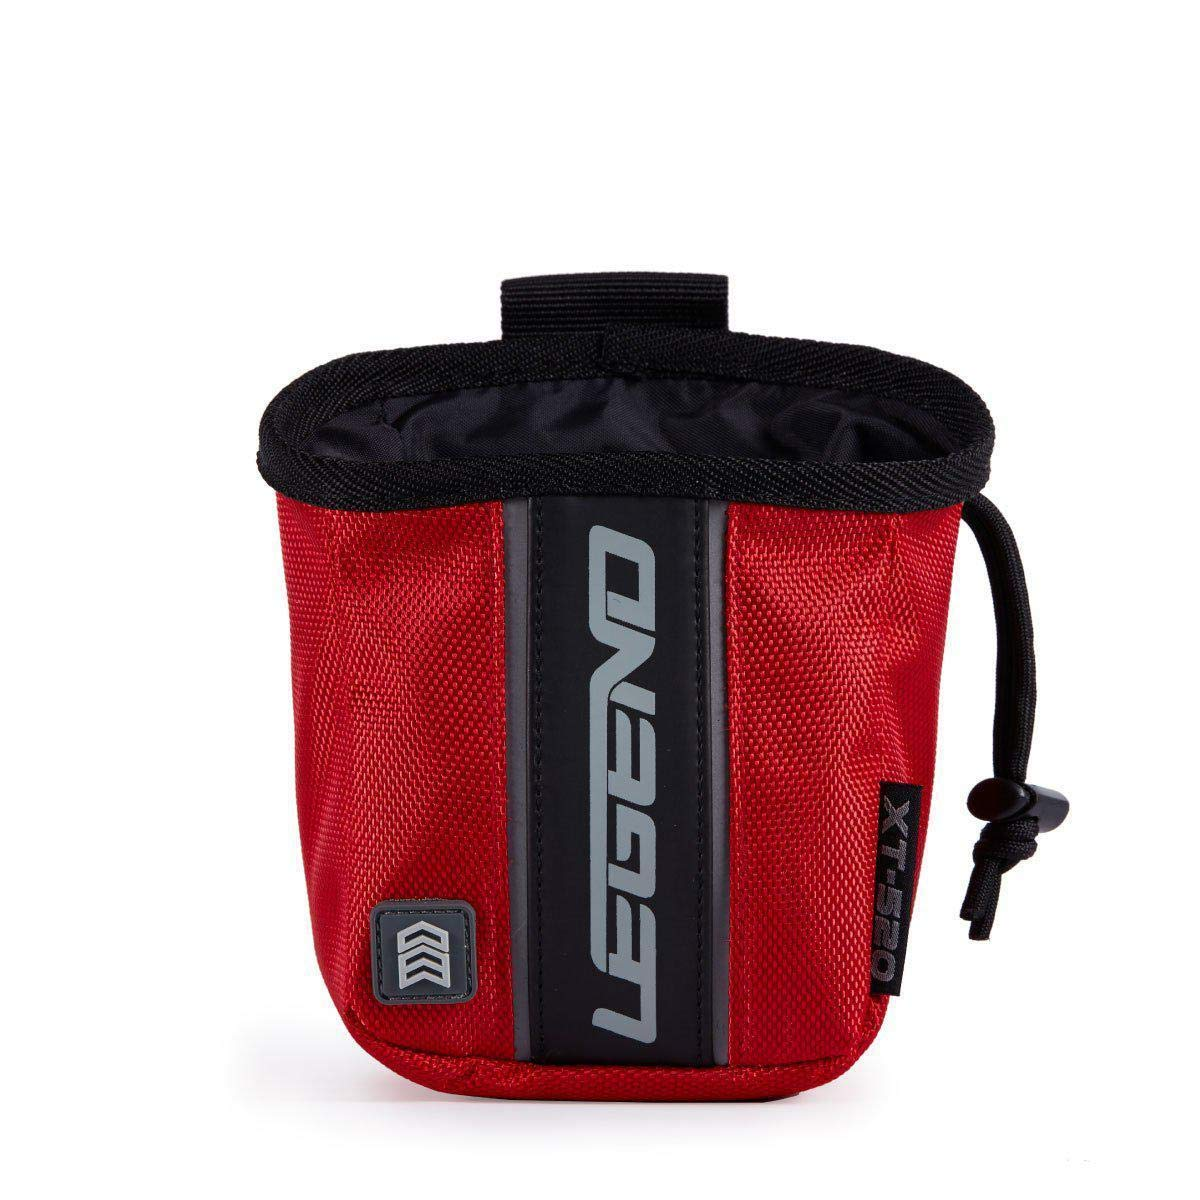 Legend Archery Release Aids Pouch Bag with Belt Loop Draw String and Zipped Pocket XT520 (Red) by Legend